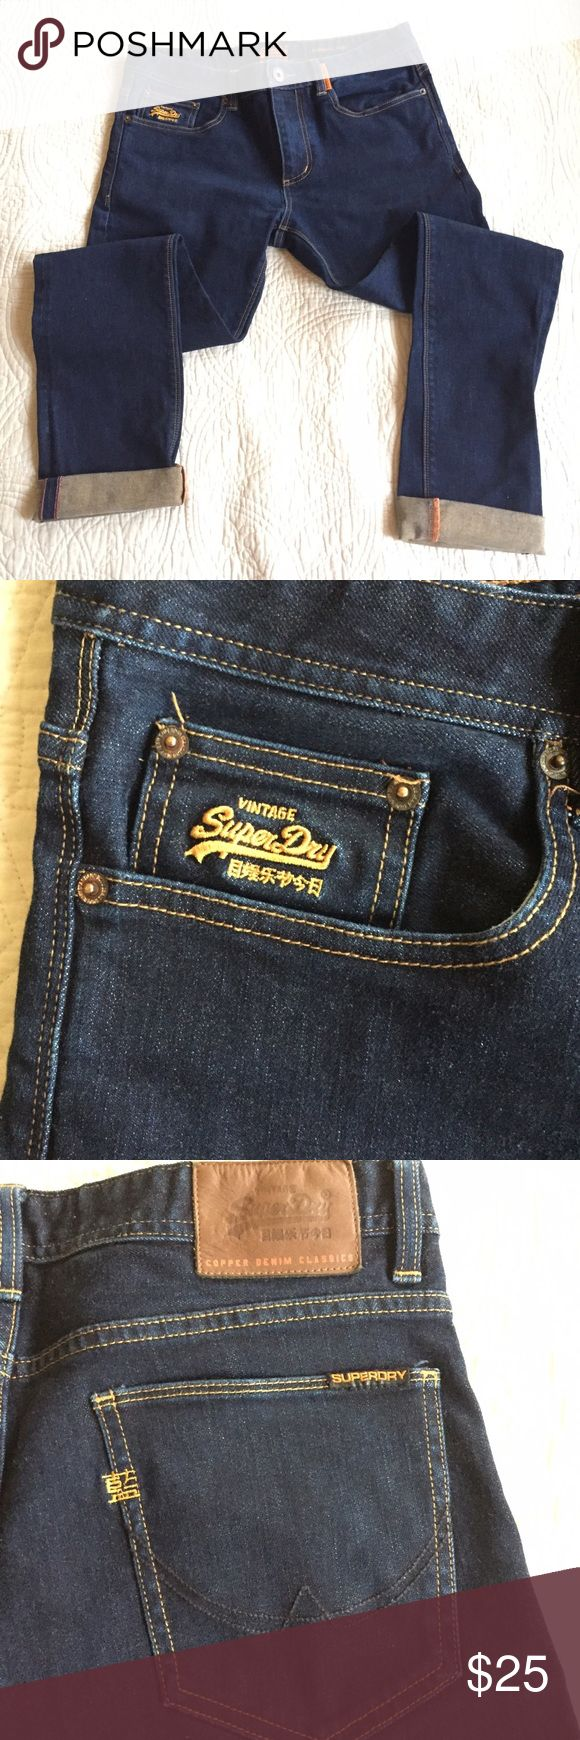 ⭐️Host Pick⭐️Superdry Corporal Slim Jeans Slim fit jeans. Worn only a few times and washed once....in fantastic condition.  ⭐️Host Pick for Men's Style by @skycliffe⭐️ Superdry Jeans Slim